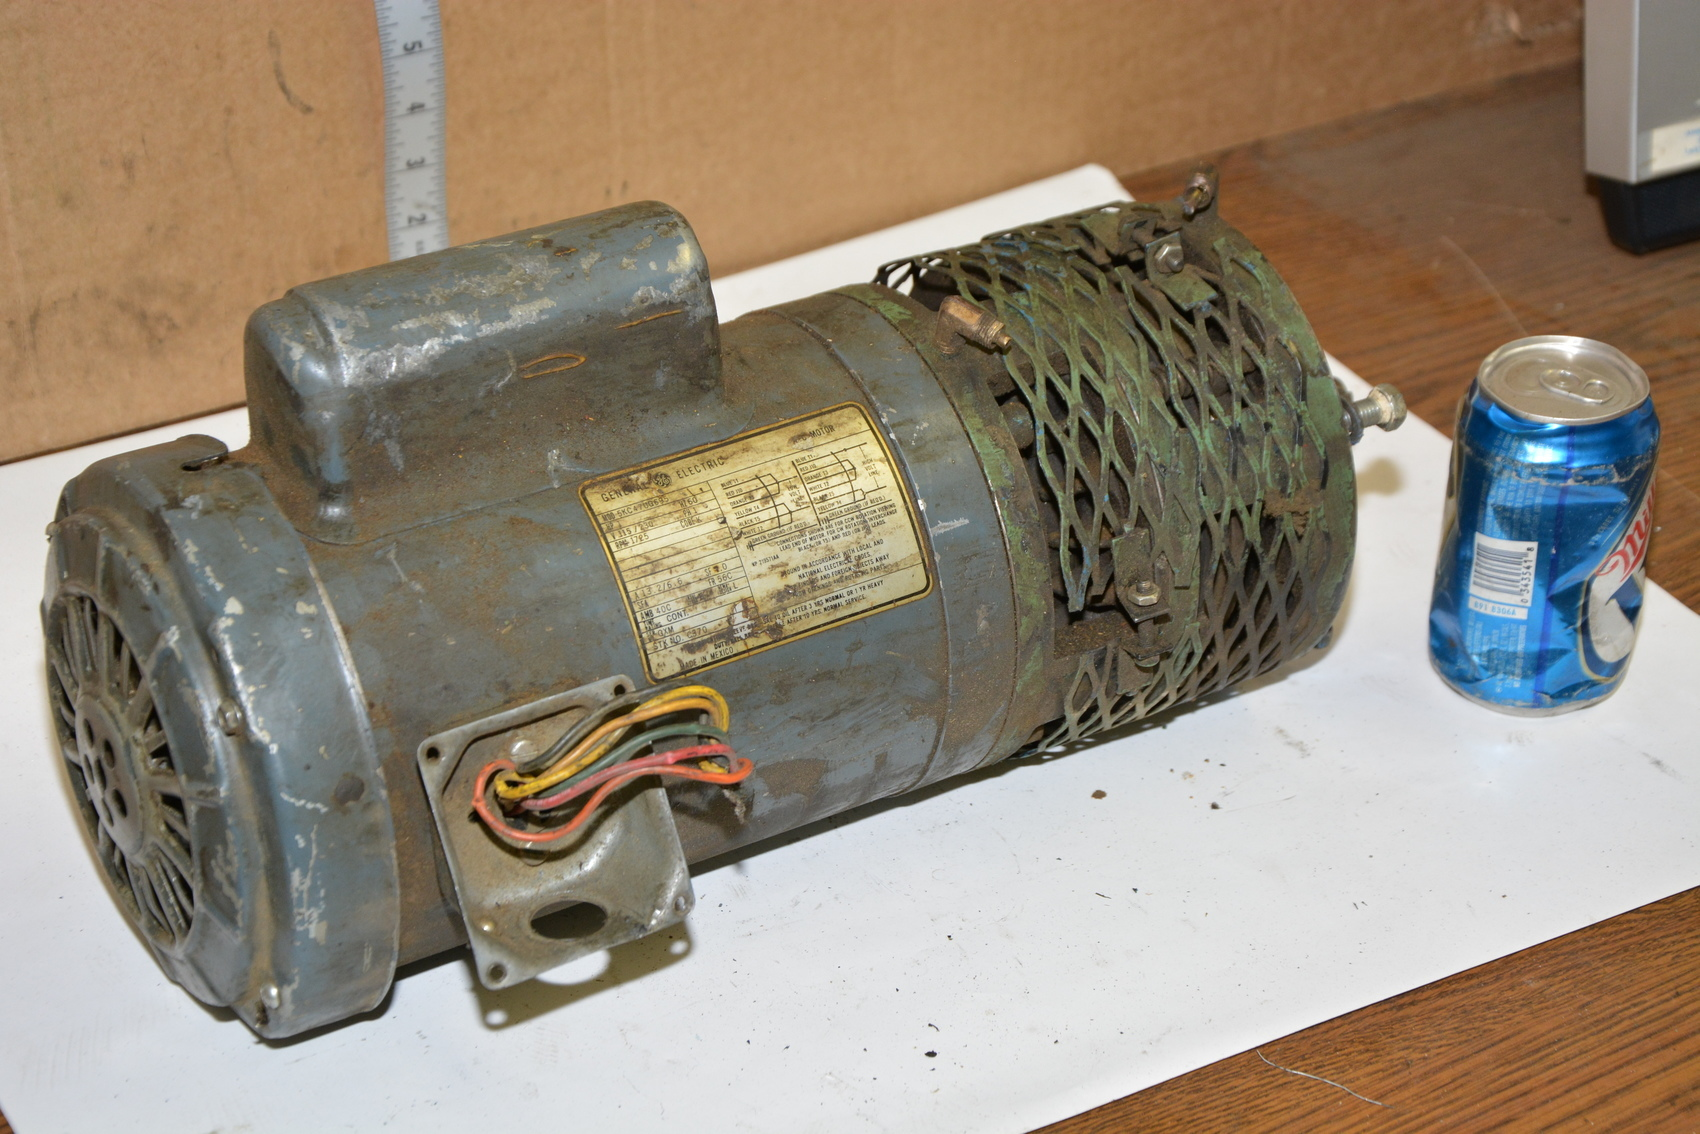 General electric 5kc47ug695 single phase motor 1 hp 1725 for 2 hp electric motor single phase